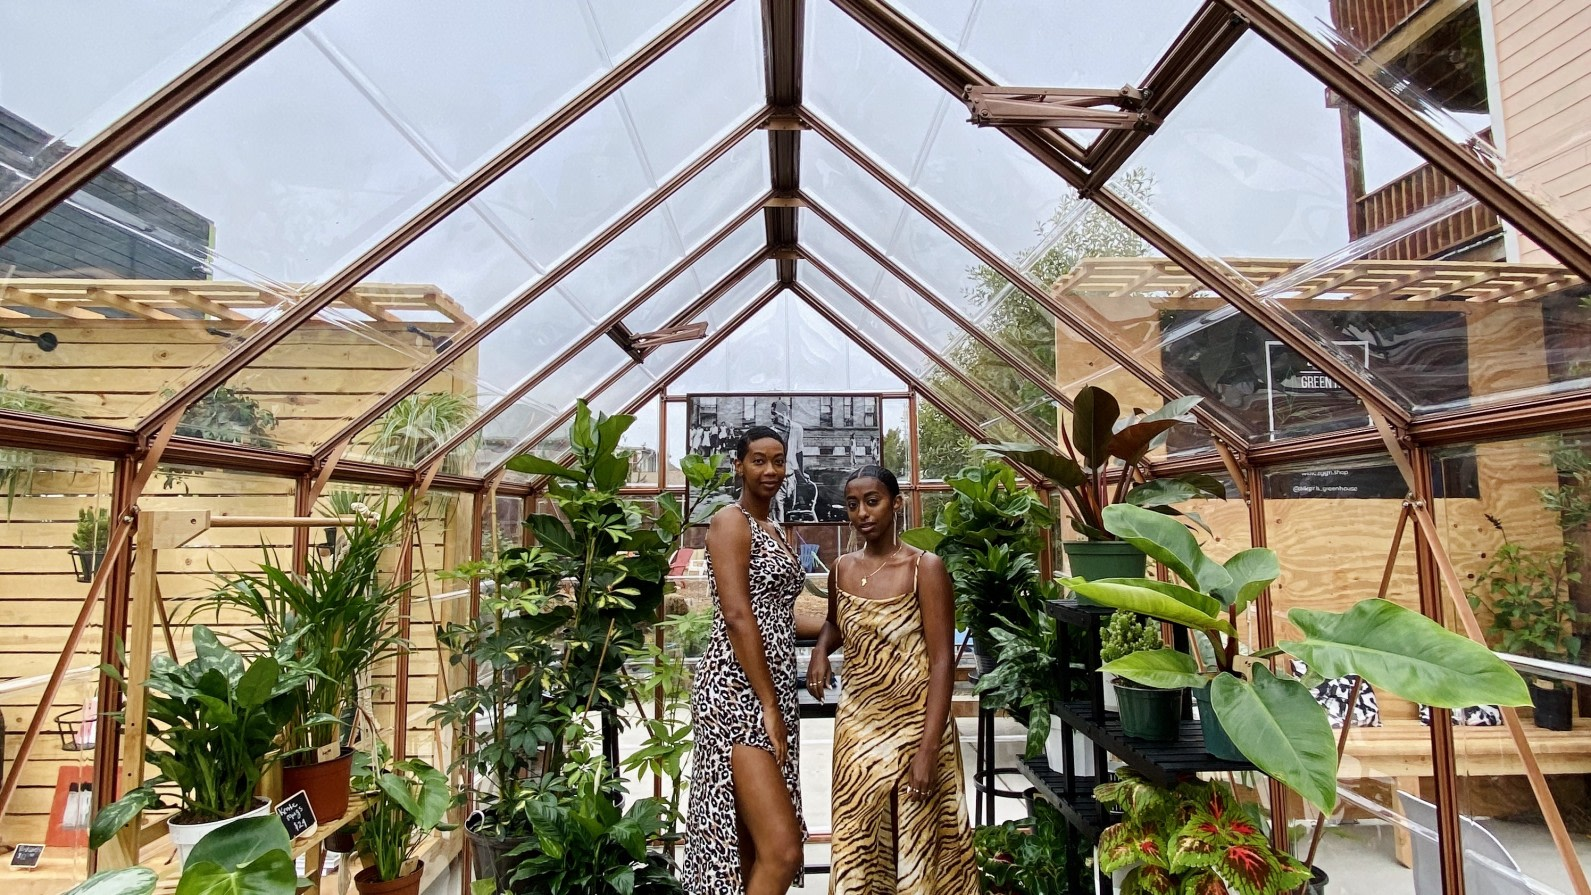 These Oakland Women Opened A Plant Nursery To Prioritize Peace Amid Protests